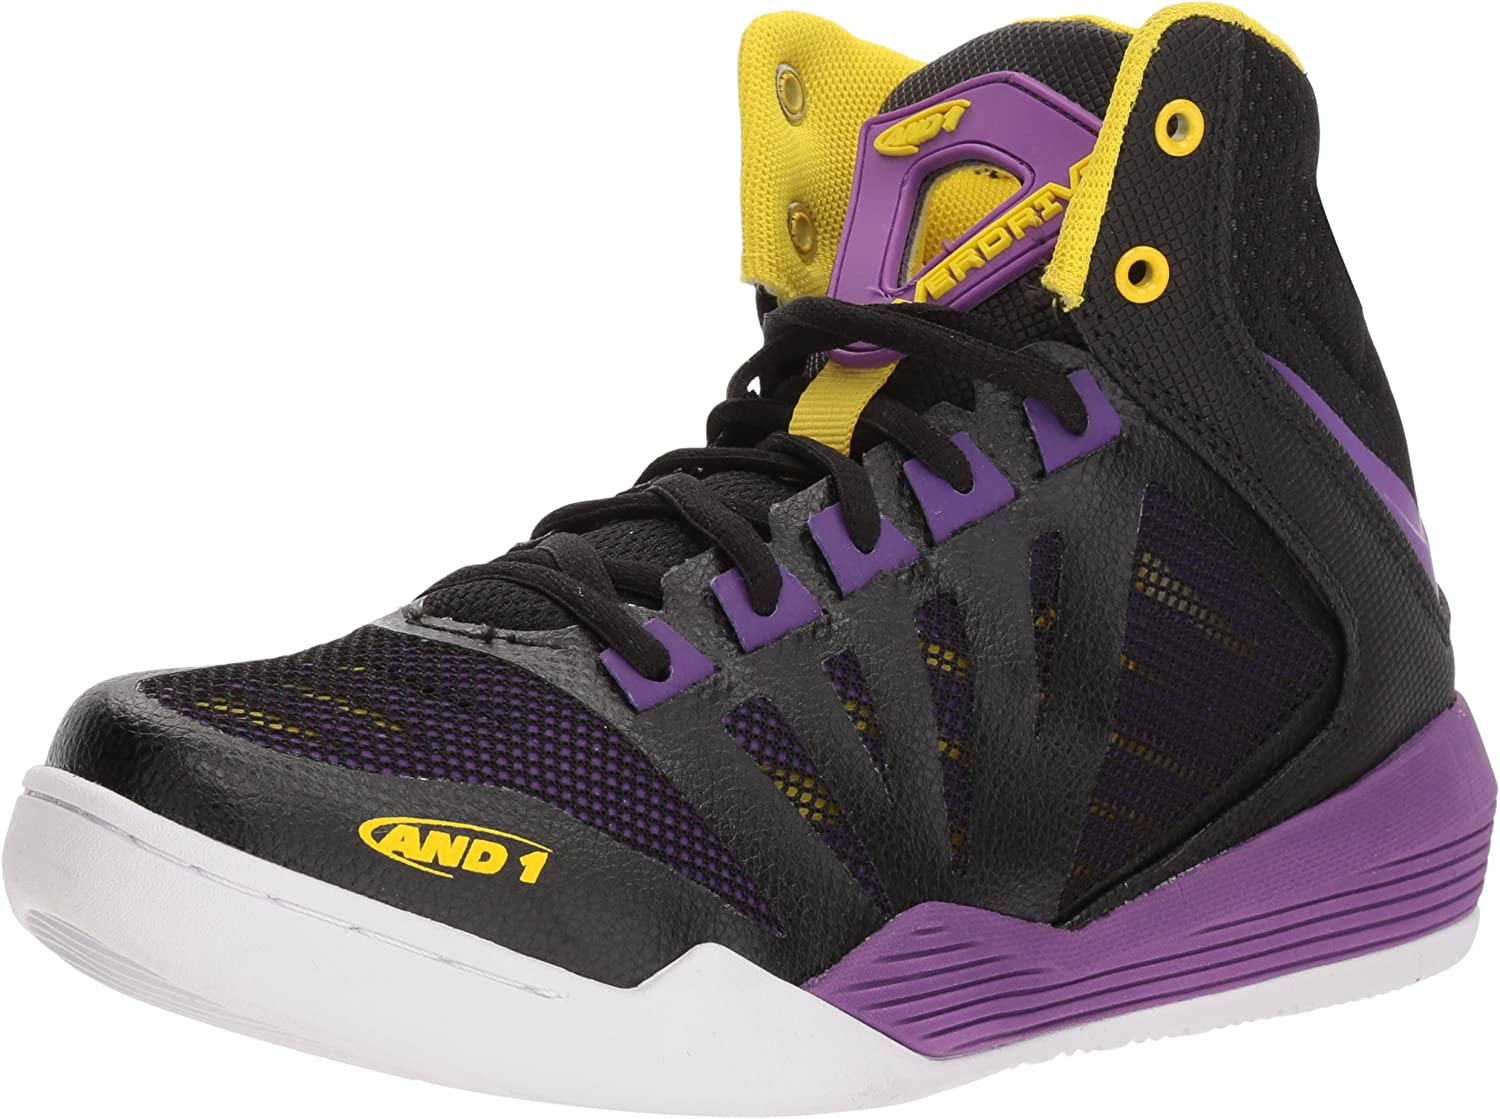 AND1 Womens D2013W-BUY Overdrive Purple Size